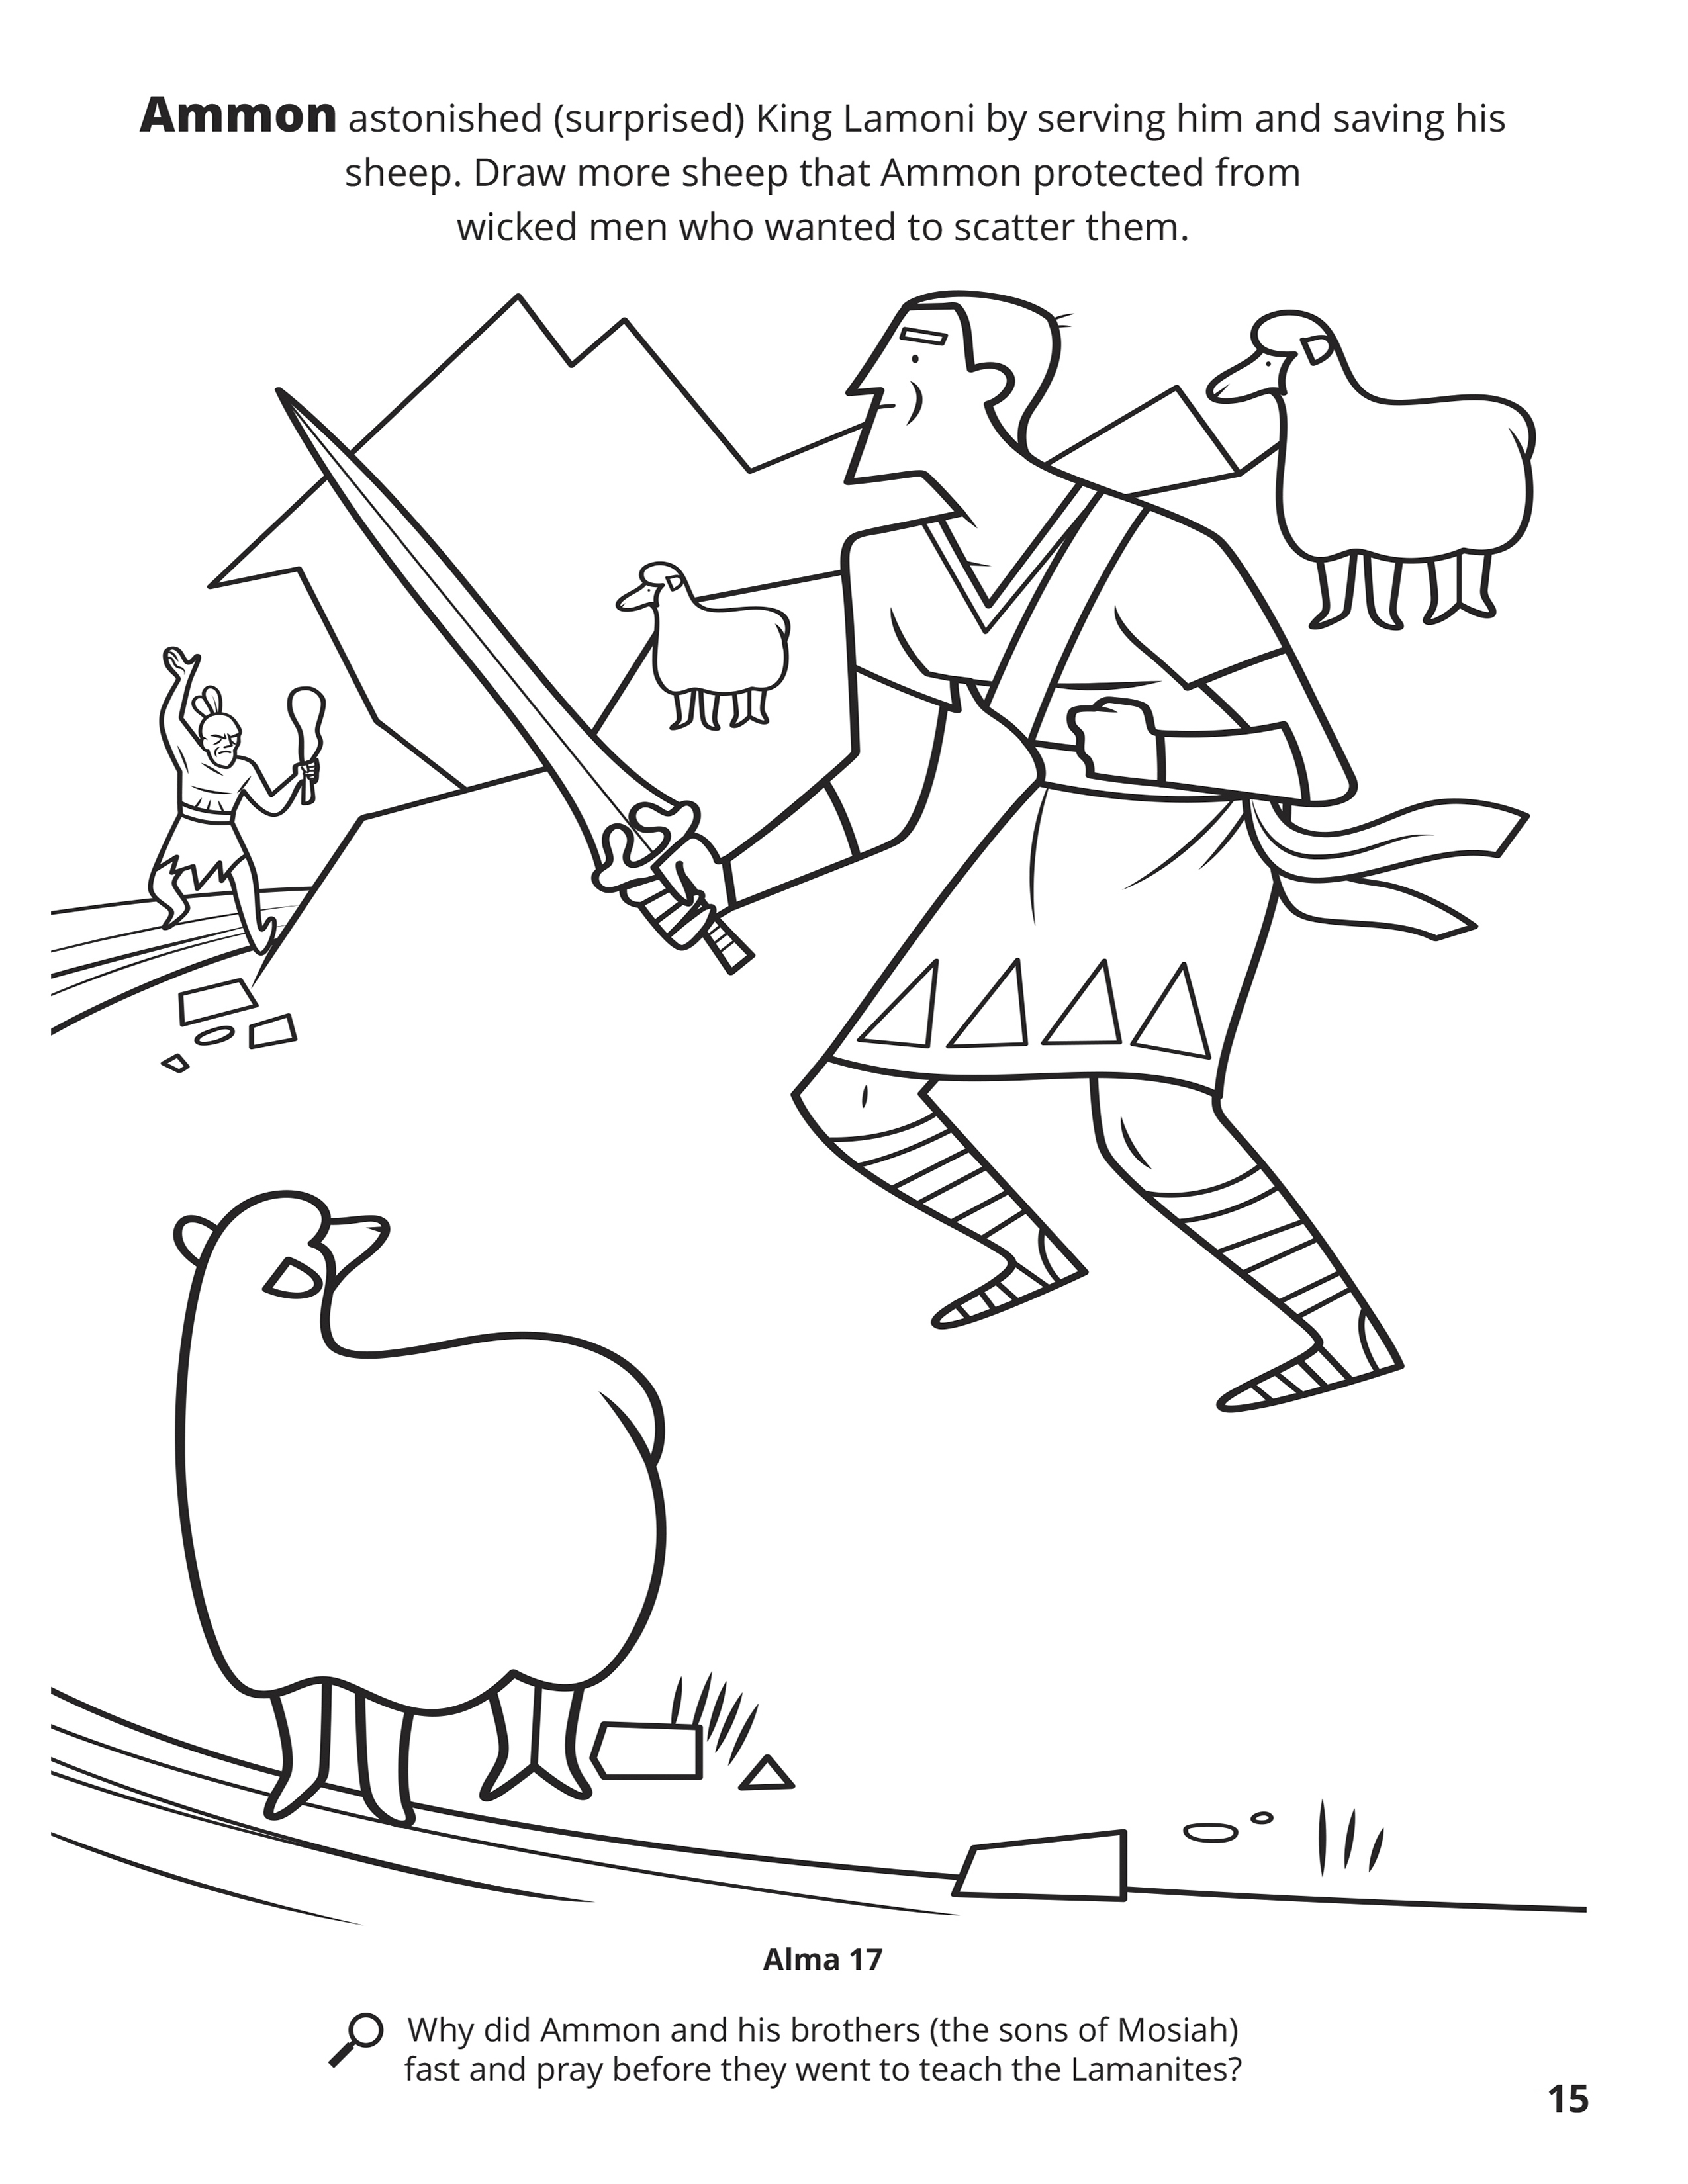 Ammon astonished (surprised) King Lamoni by serving him and saving his sheep. Draw more sheep that Ammon protected from wicked men who wanted to scatter them. Location in the Scriptures: Alma 17. Search the Scriptures: Why did Ammon and his brothers (the sons of Mosiah) fast and pray before they went to teach the Lamanites?